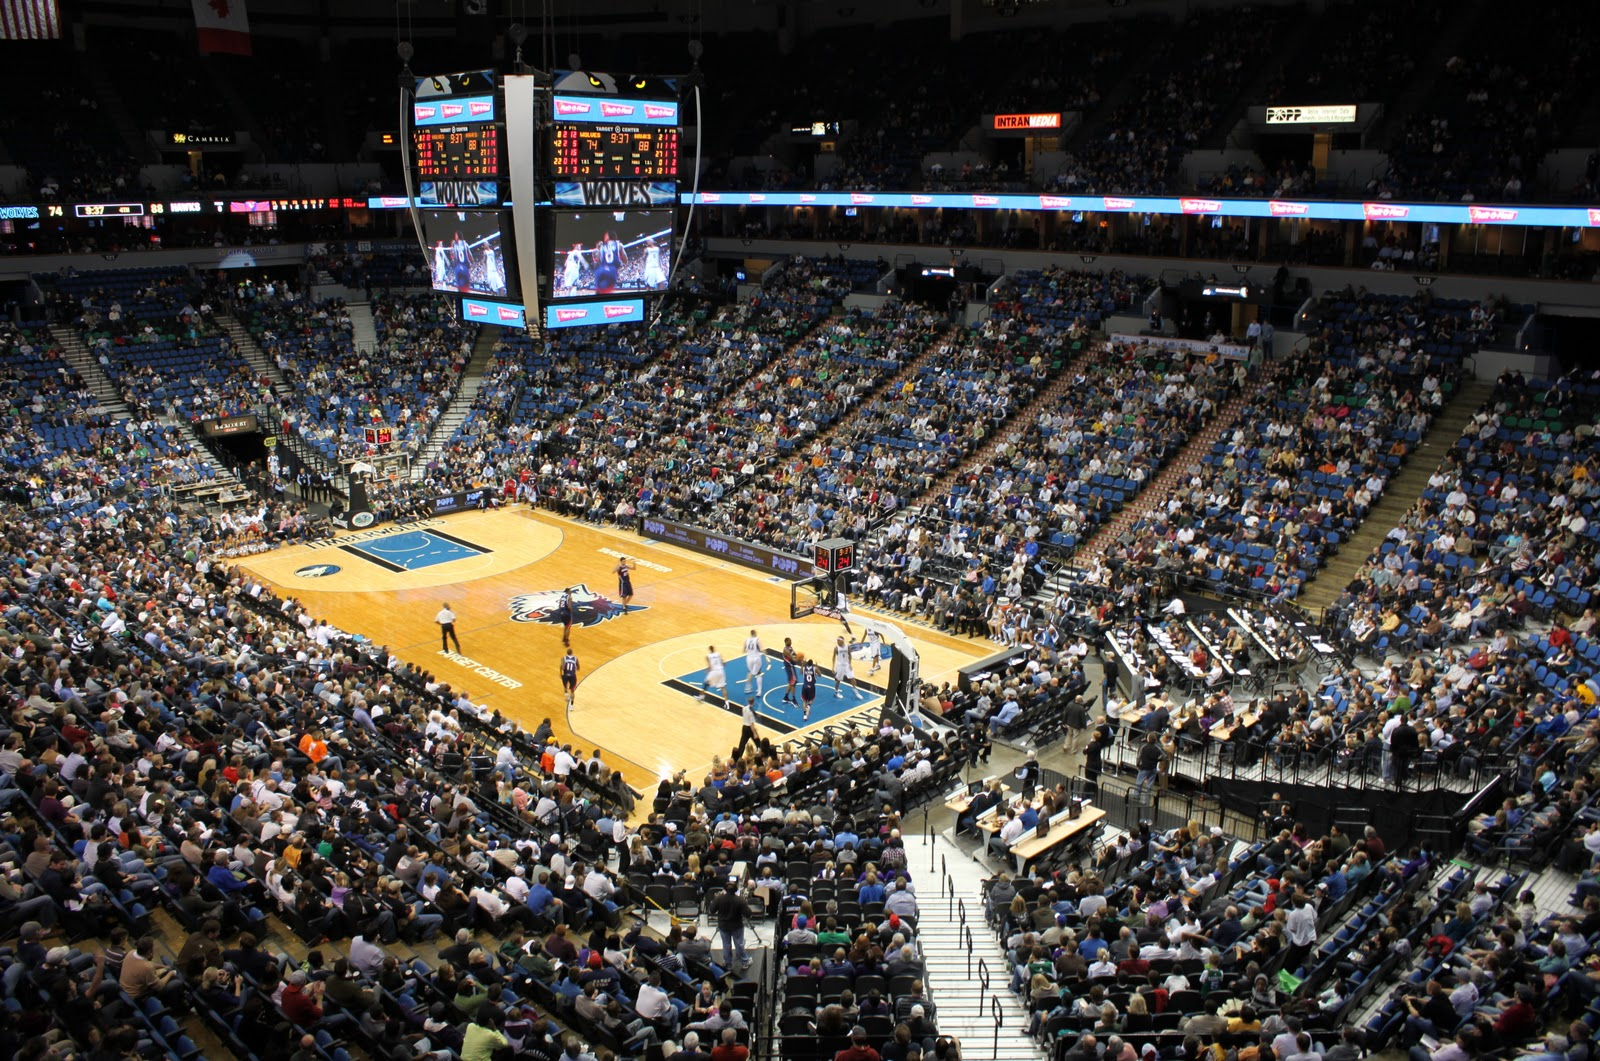 The 5 Worst Nba Arenas To Watch A Game In 2015